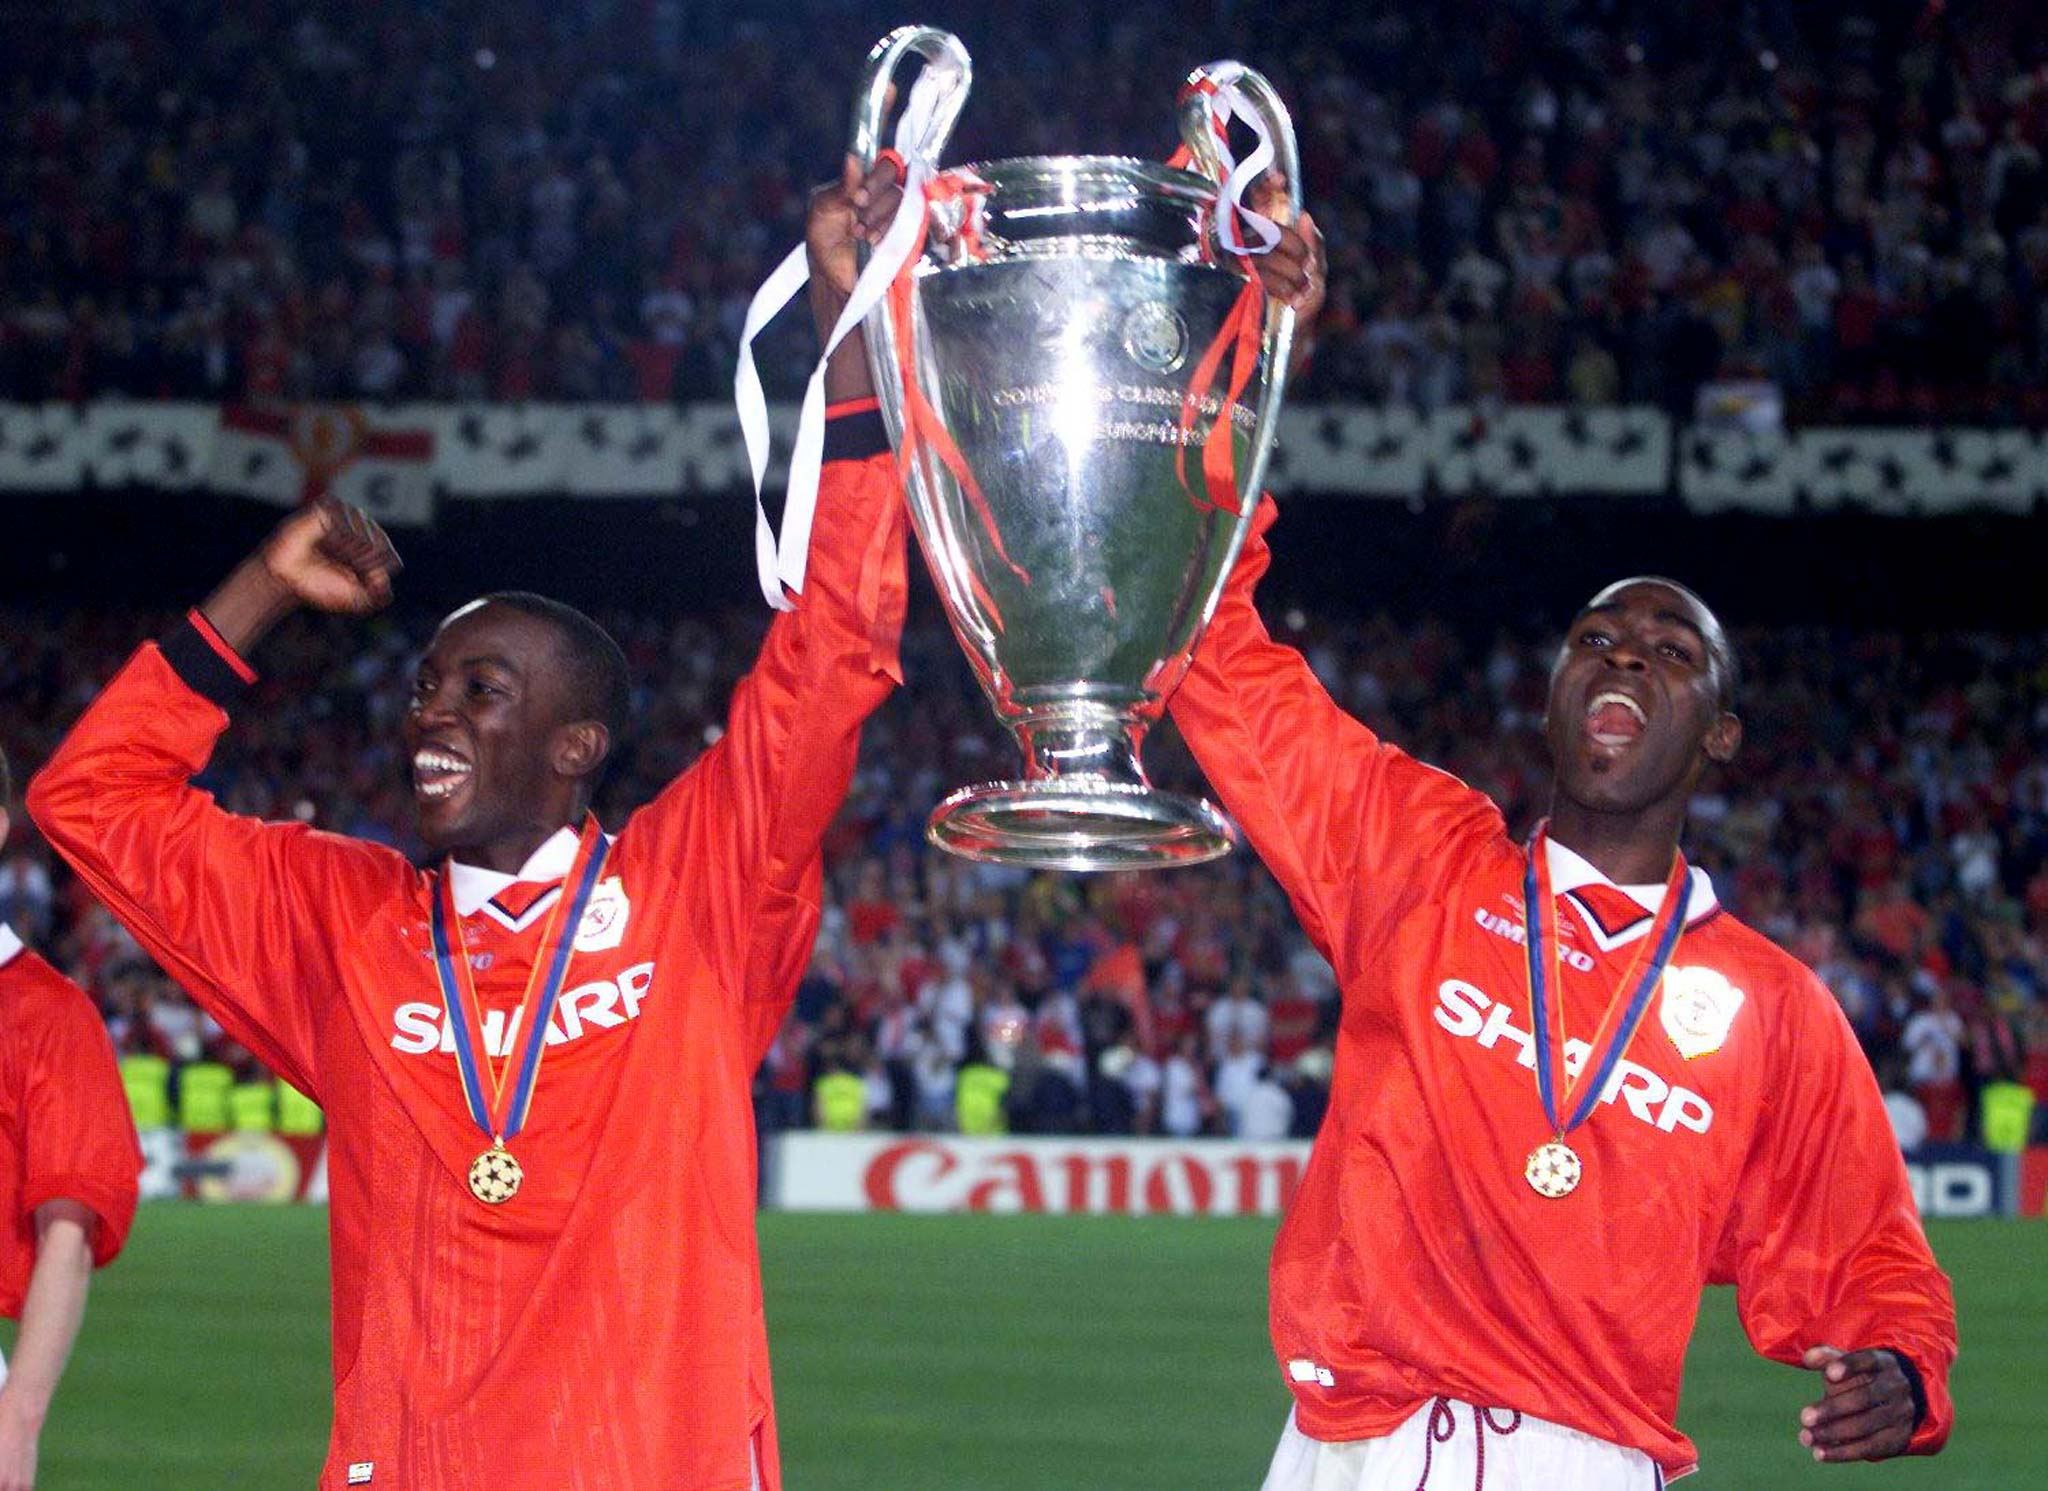 Manchester United's Dwight Yorke (L) and Andy Cole hold the cup as they celebrate their victory over Bayern Munich in the European Cup final at Barcelona's Nou Camp stadium May 26. Manchester United won the match 2-1. (Reuters)